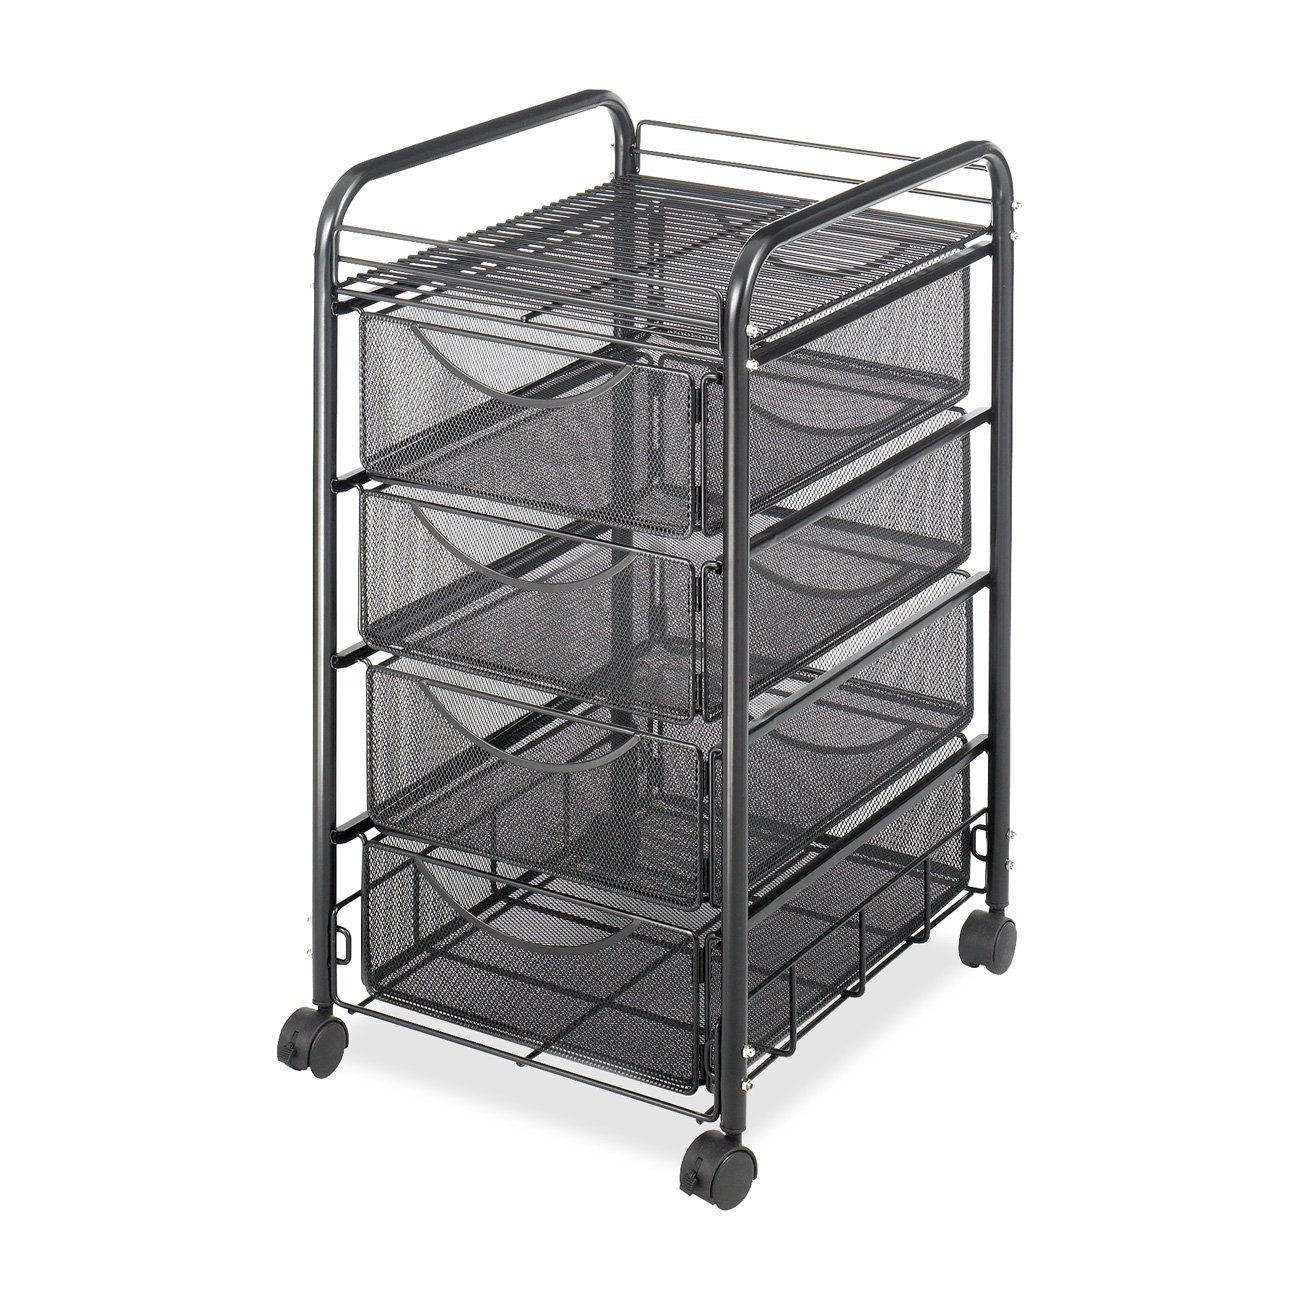 Safco Products Onyx Mesh 4 Drawer Rolling File Cart 5214BL, Black Powder Coat Finish, Durable Steel Mesh Construction, Swivel Wheels For Mobility (Renewed)